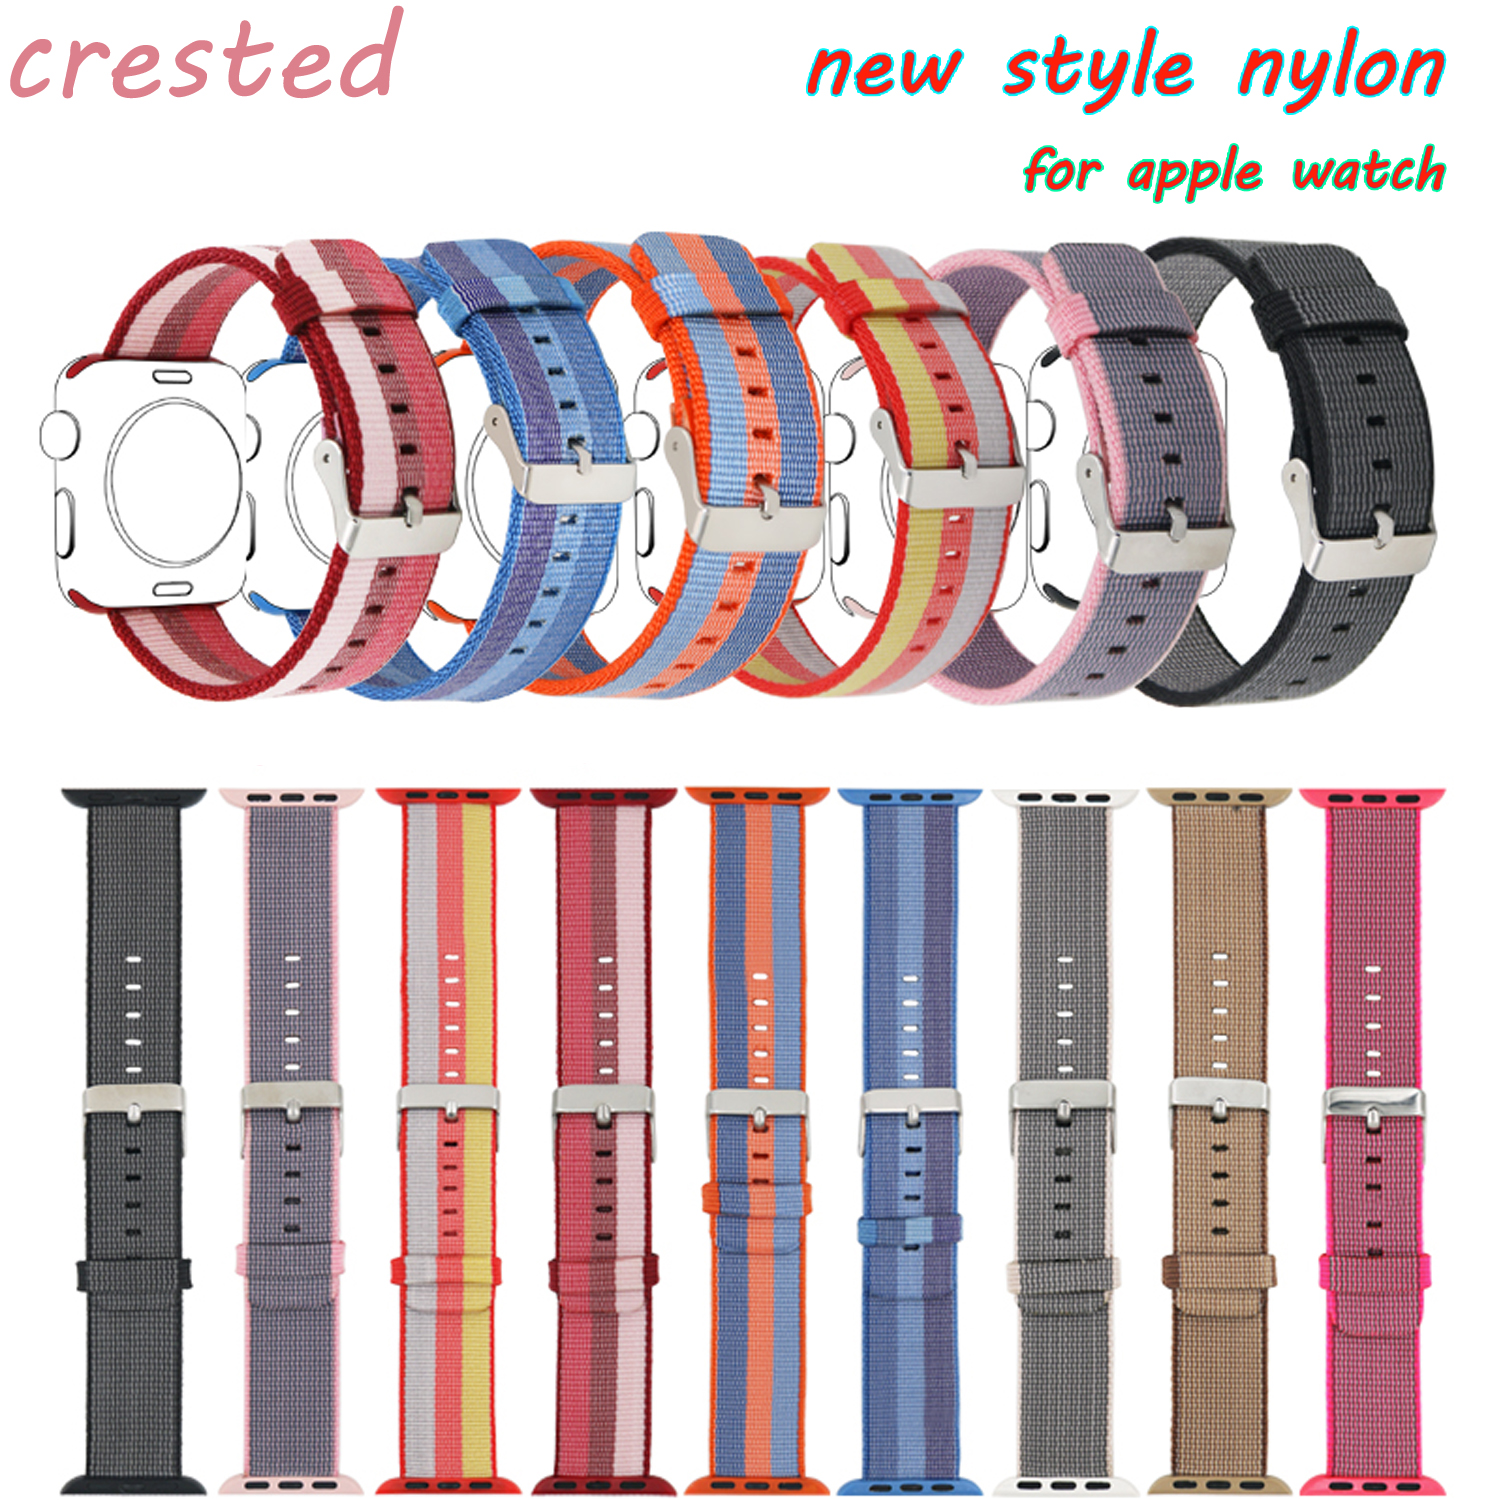 CRESTED wove nylon strap for apple watch band 42mm 38mm iWatch 3 2 1 wrist watchband Stainless Steel Buckle Replacement Band crested nylon band strap for apple watch band 3 42mm 38mm survival rope wrist bracelet watch strap for apple iwatch 3 2 1 black